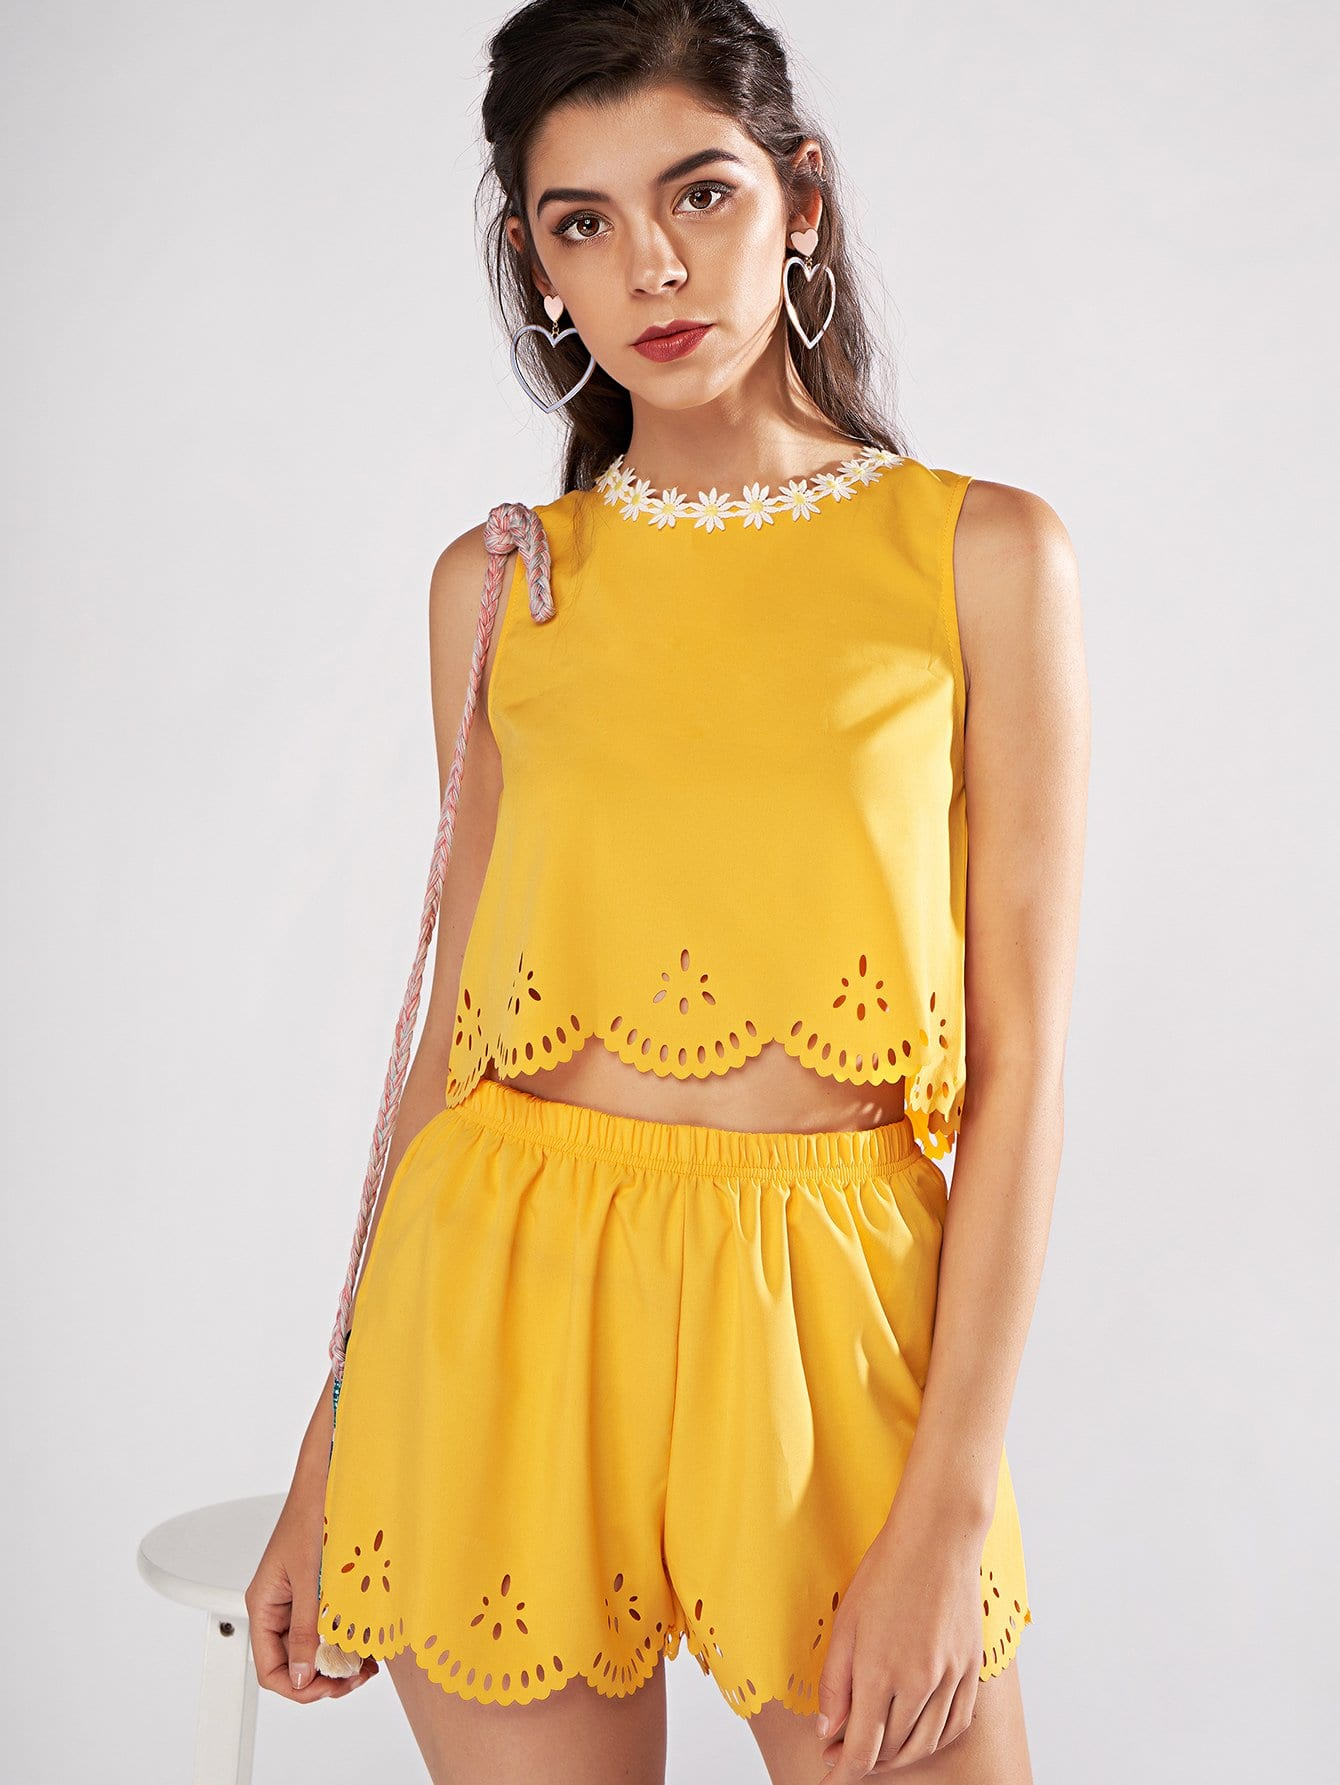 Lace Panel Hollow Out Top With Shorts lace panel hollow out top with shorts